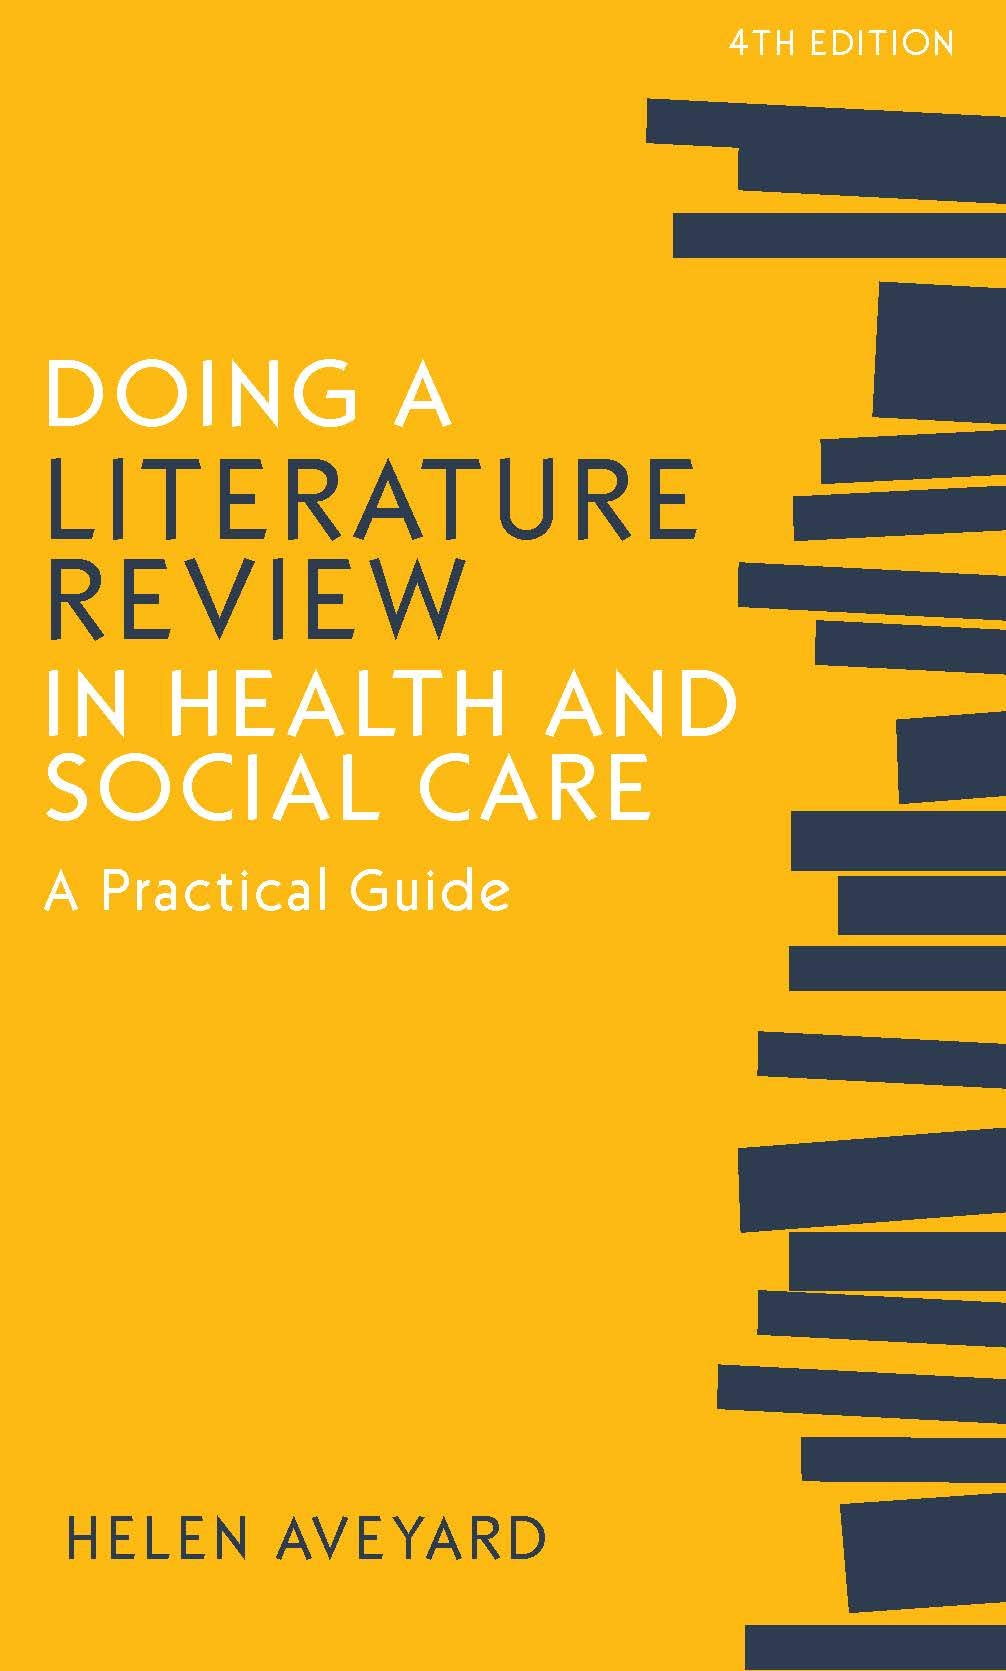 doing a literature review in health and social care a practical guide by helen aveyard